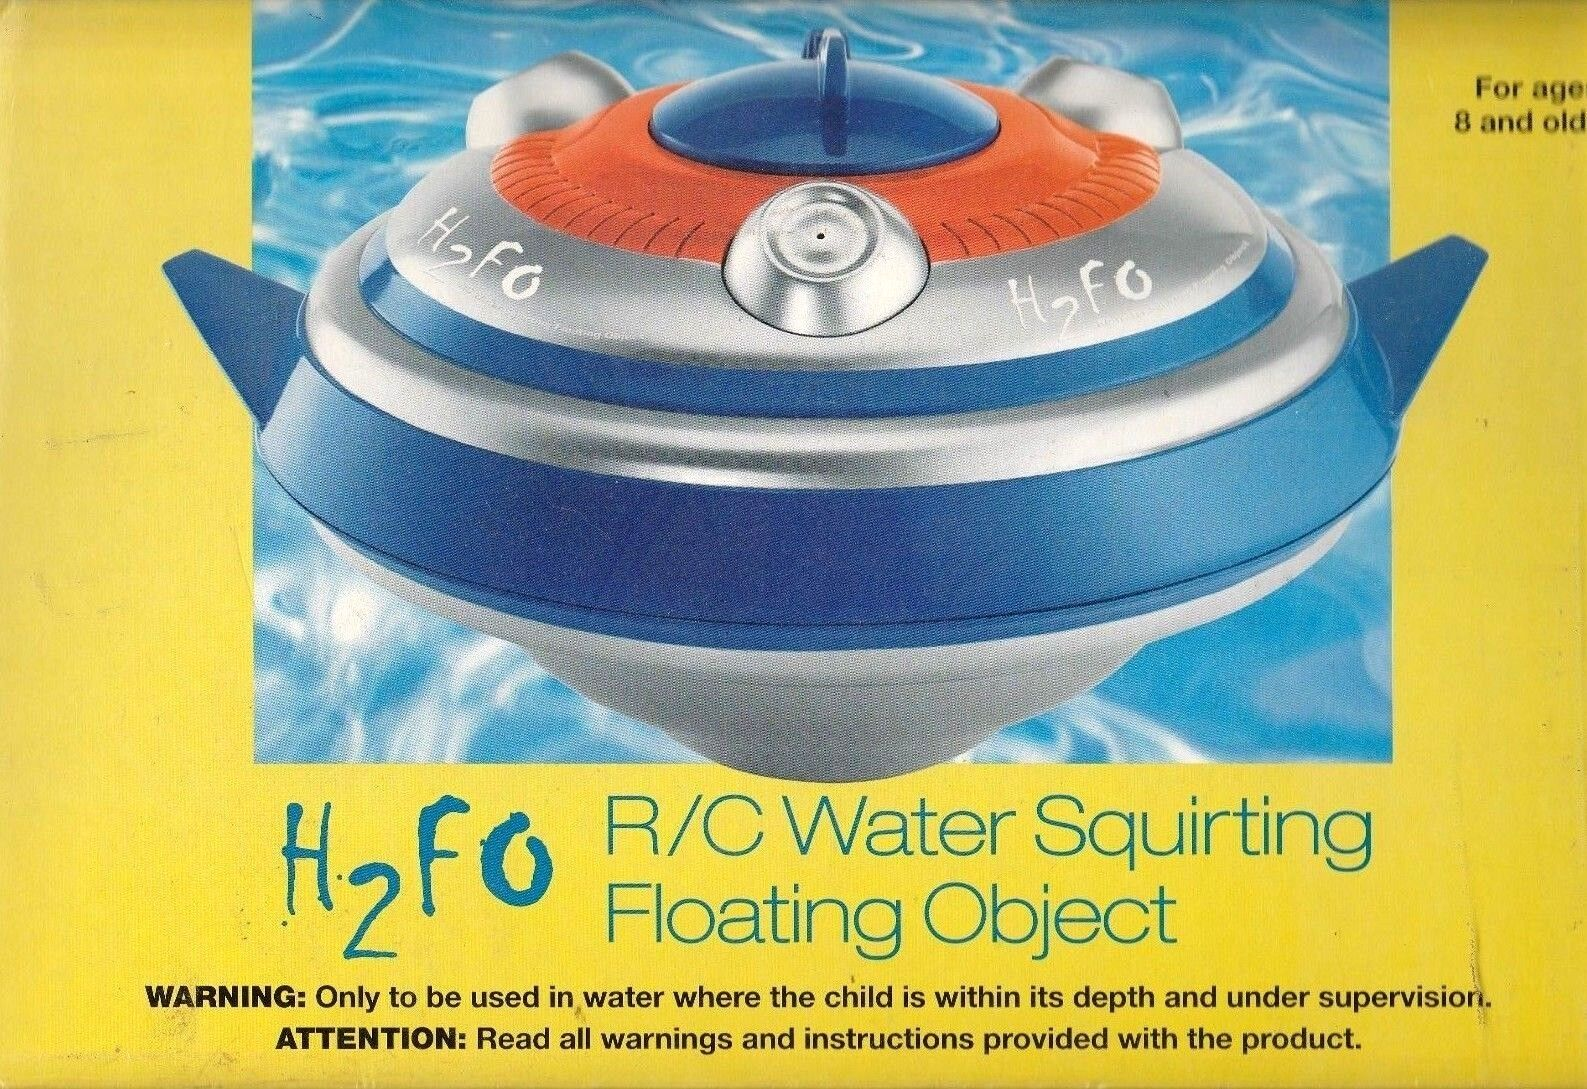 Sharper Image h2fo RC Water Squirting Floating Object